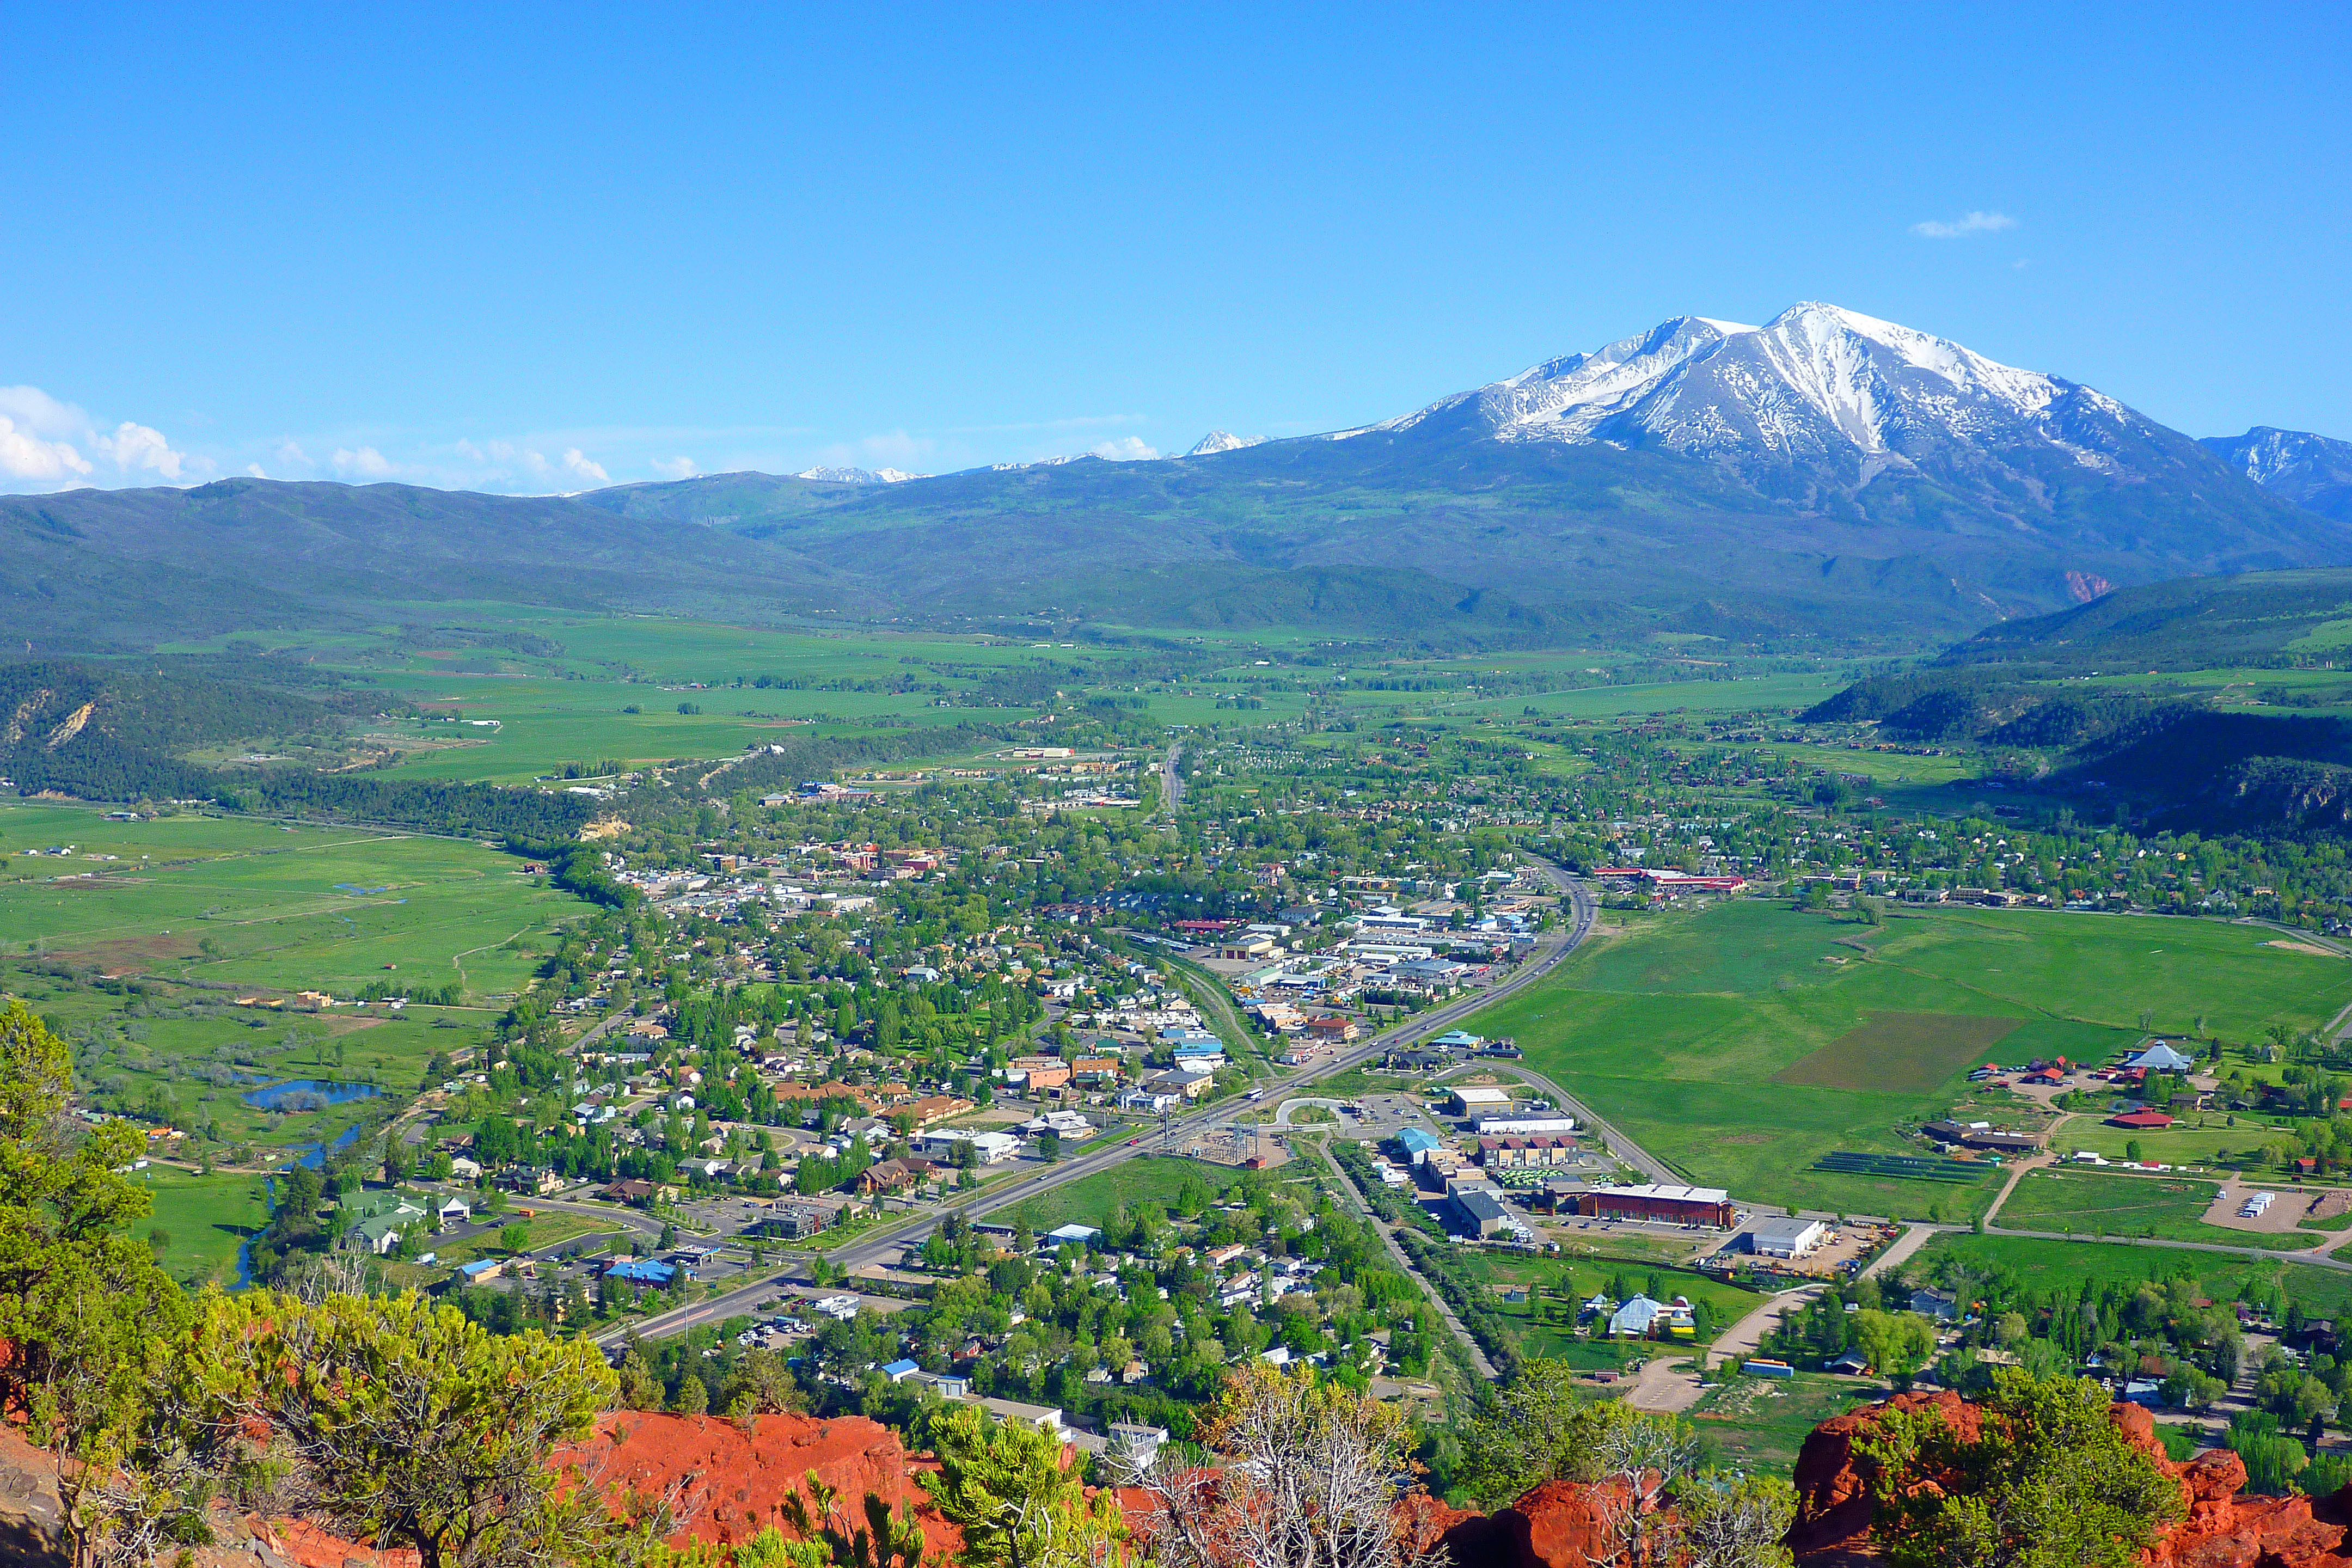 Carbondale, Colorado with Mount Sopris in the background; as viewed from Red Hill/Mushroom Rock.